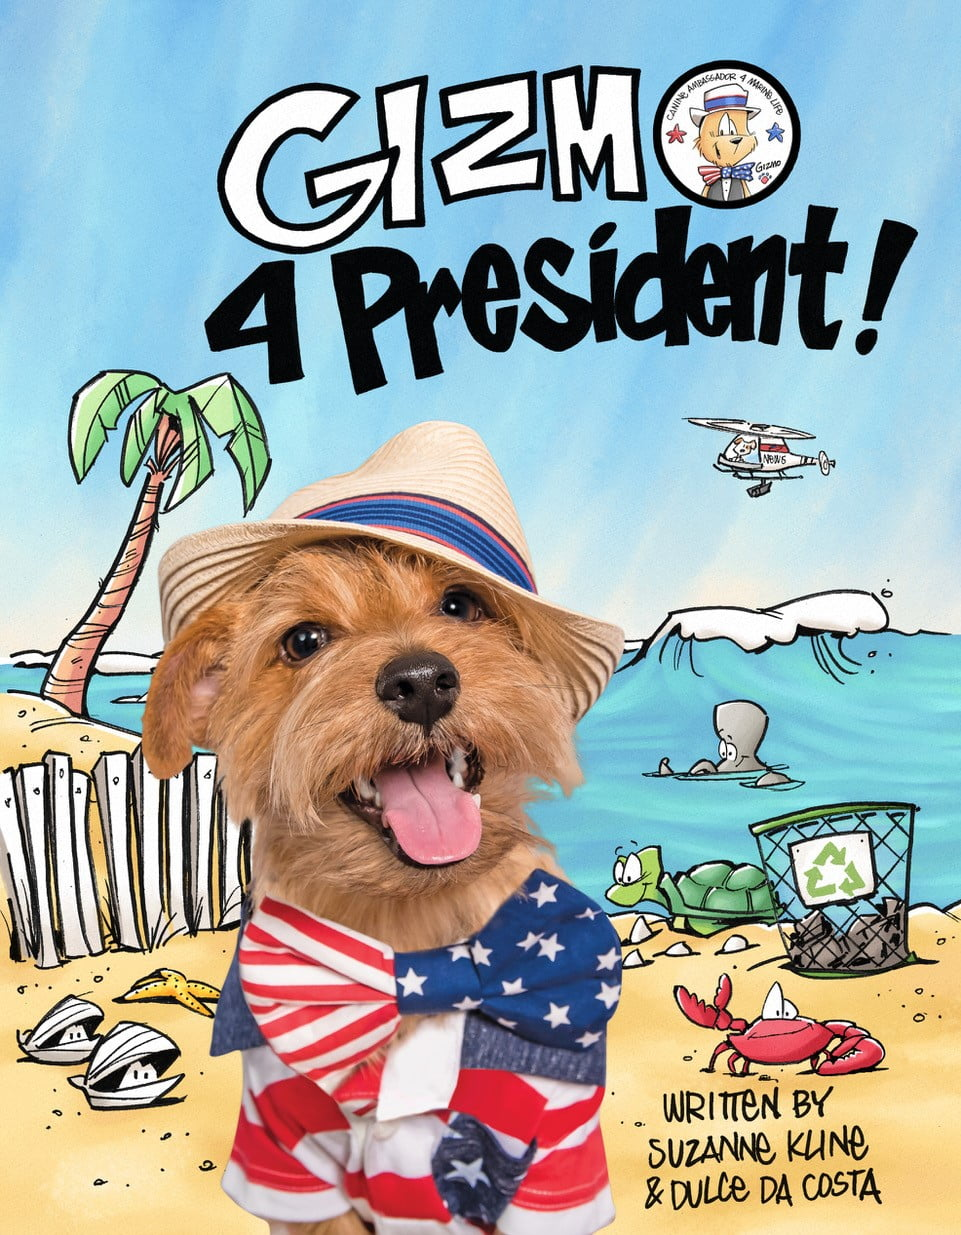 'Gizmo 4 President!' is a New Children's Election-Themed Book